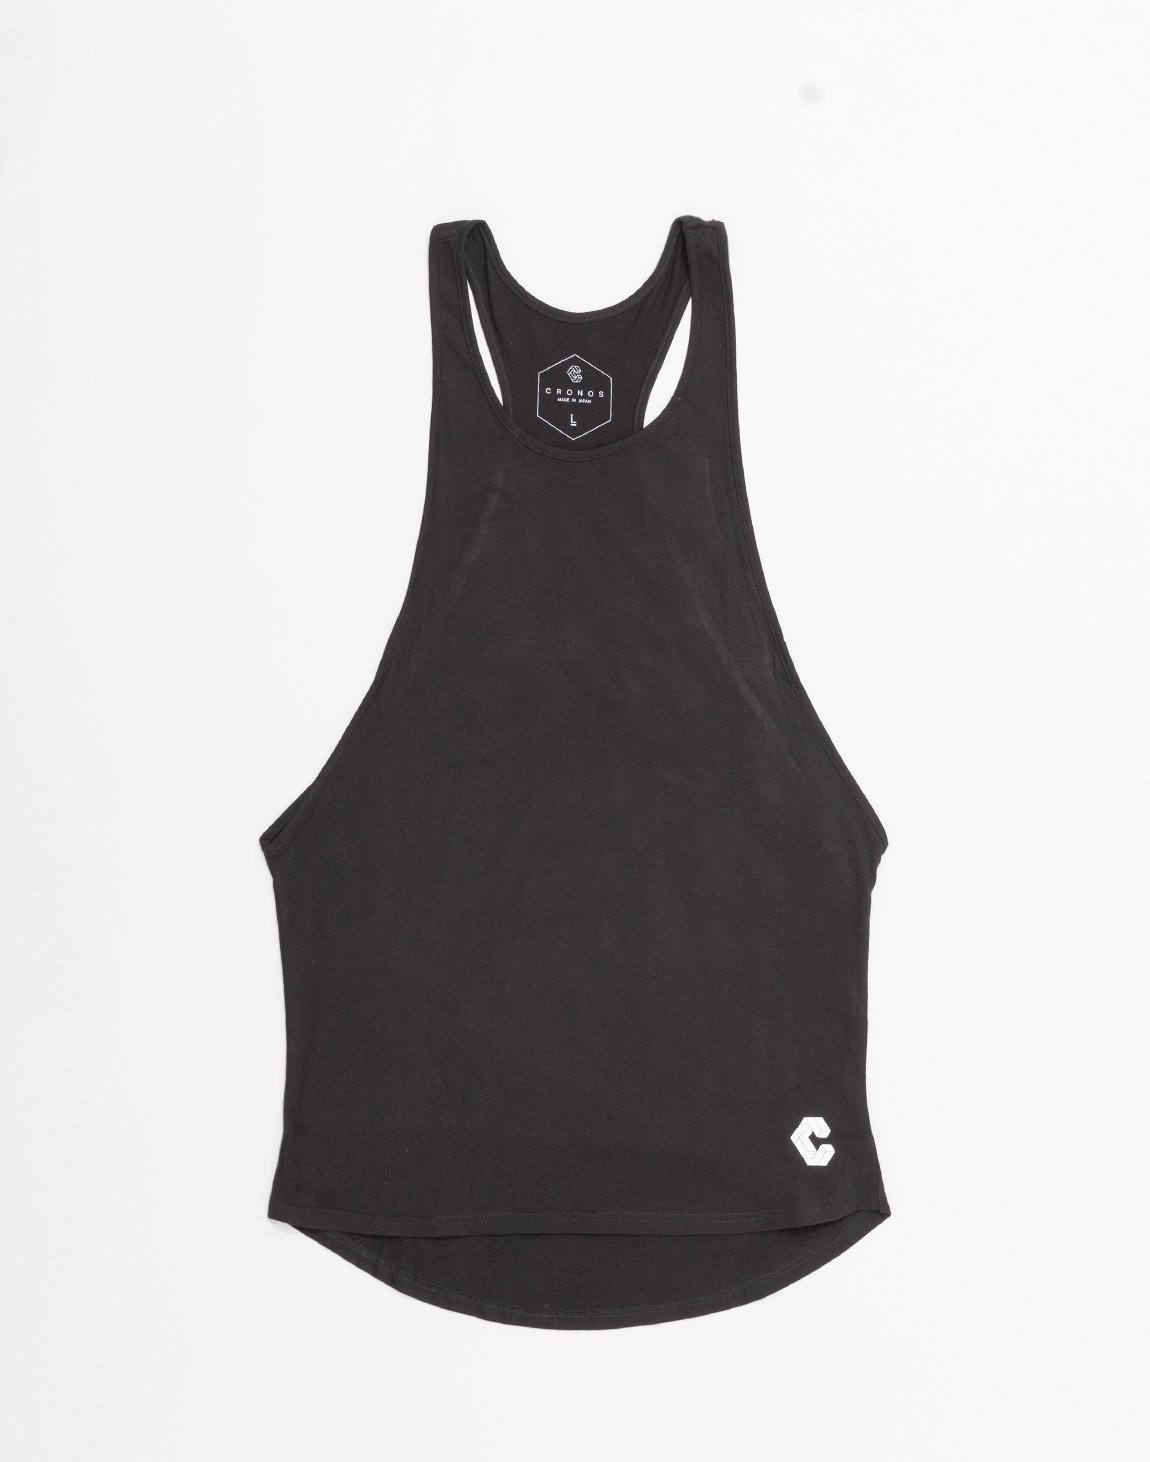 <img class='new_mark_img1' src='https://img.shop-pro.jp/img/new/icons1.gif' style='border:none;display:inline;margin:0px;padding:0px;width:auto;' />CRONOS WIDE CUFFS LOGO TANK TOP 【BLACK】